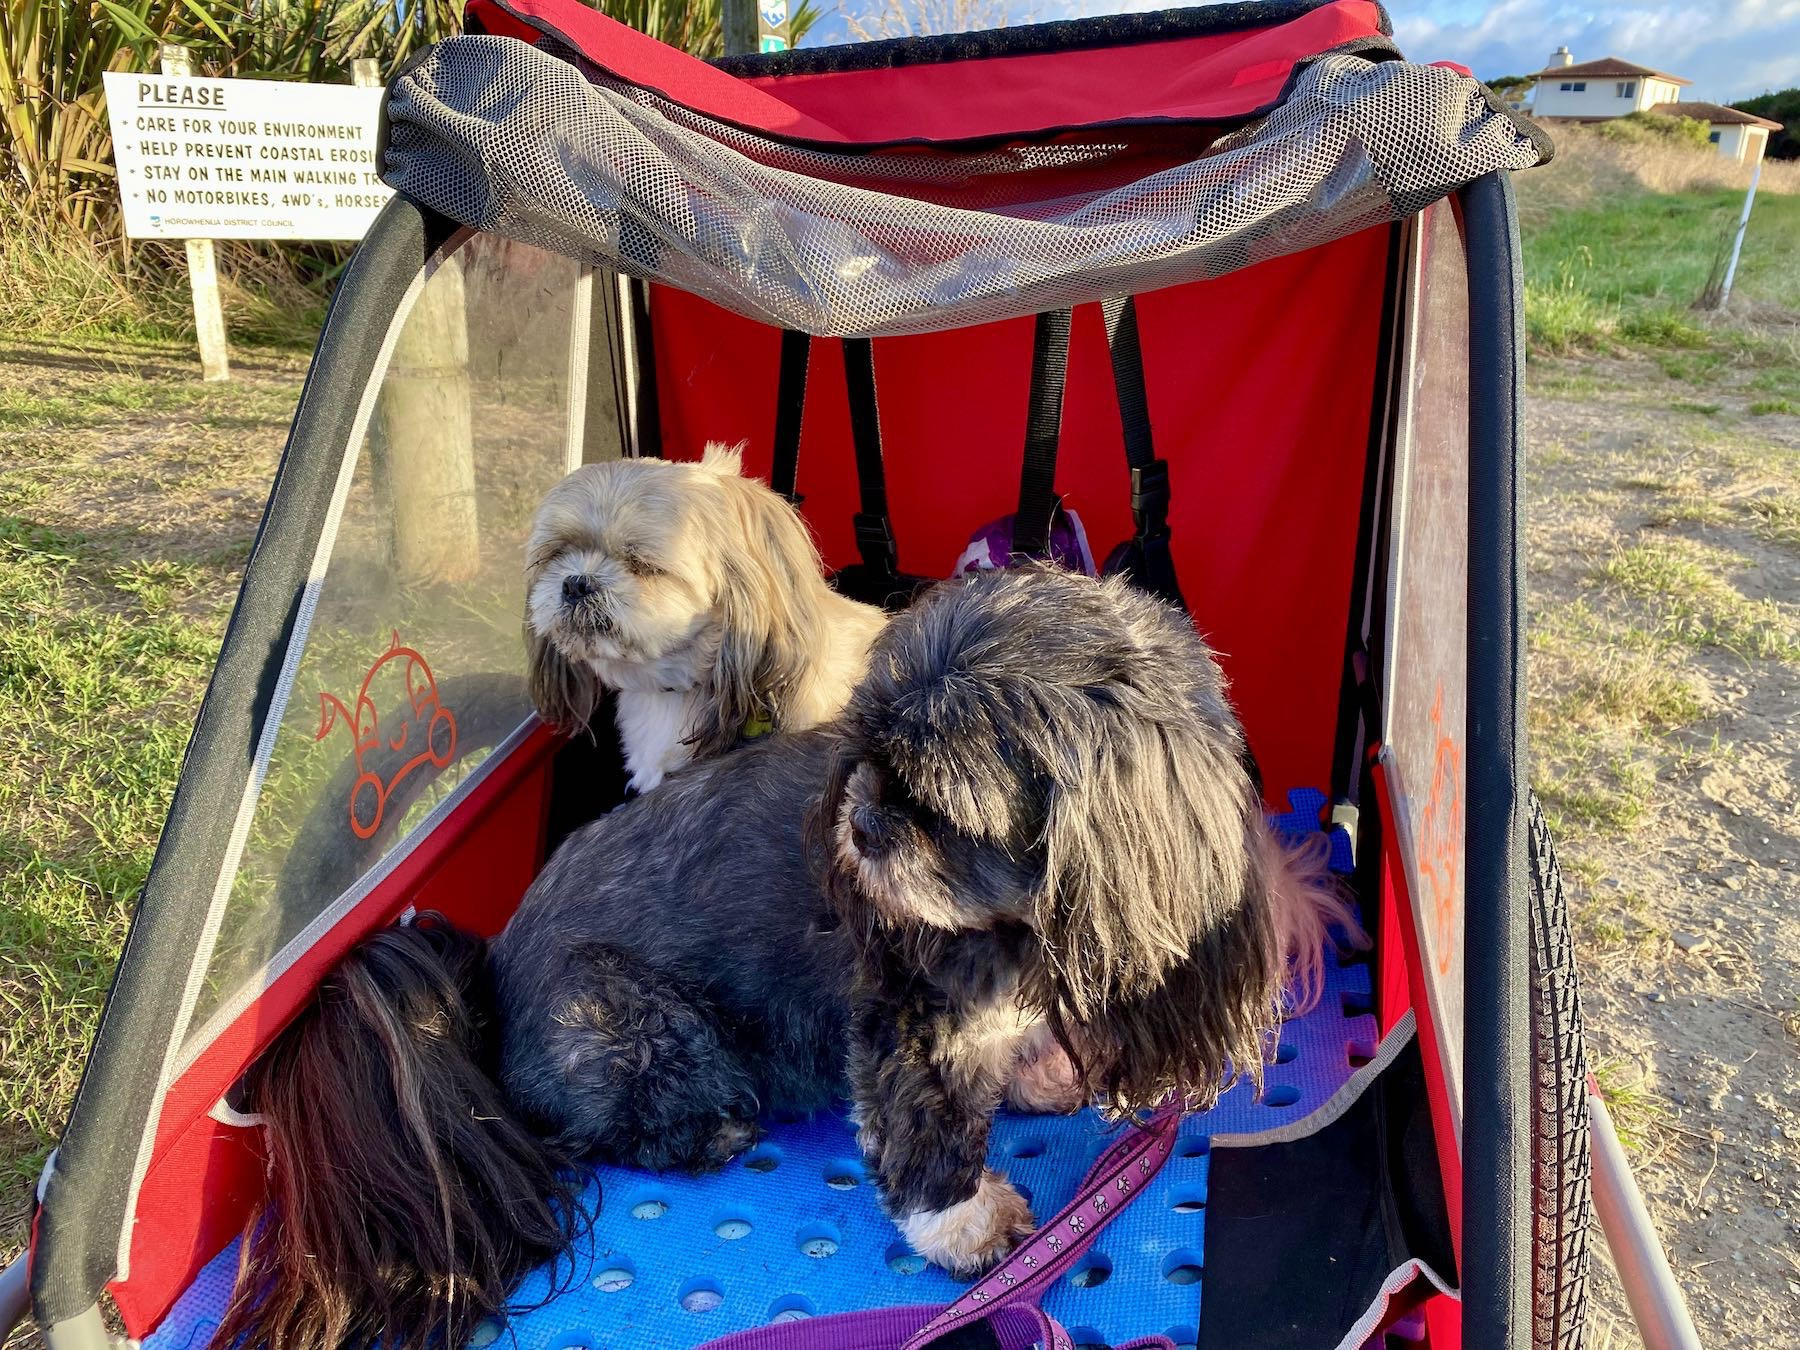 Two small dogs in a bicycle trailer.